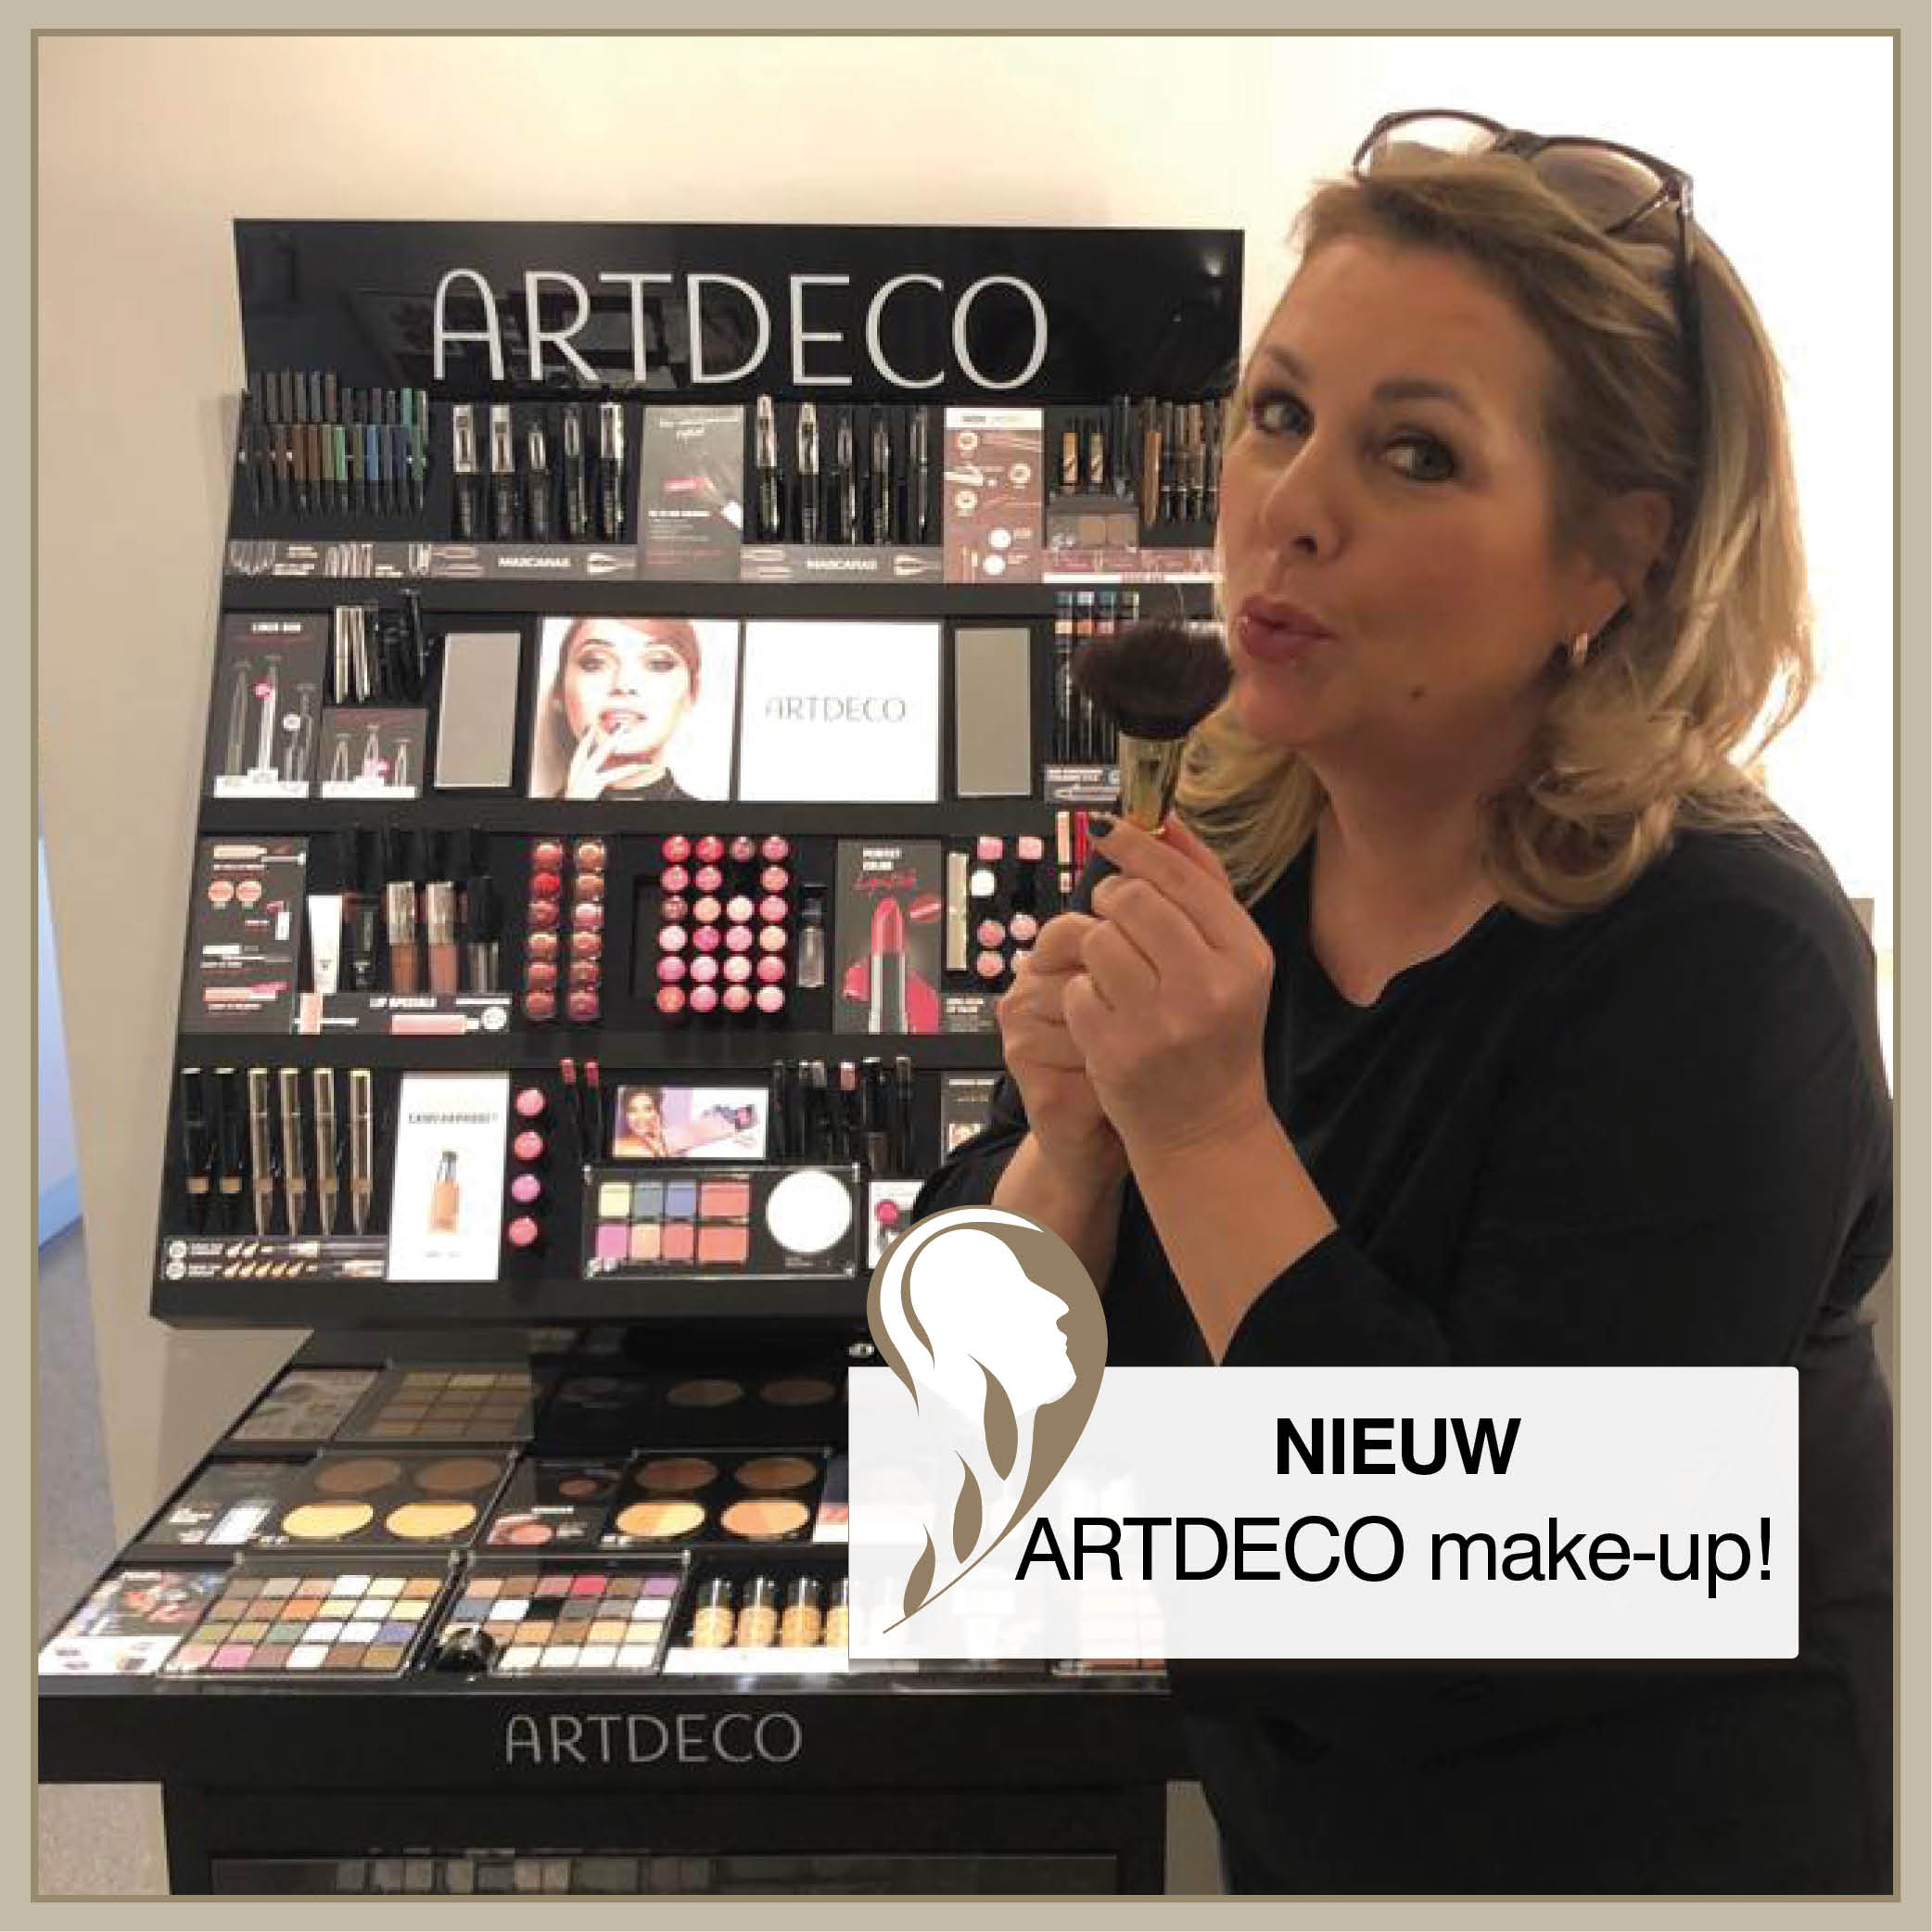 ARTDECO make-up!